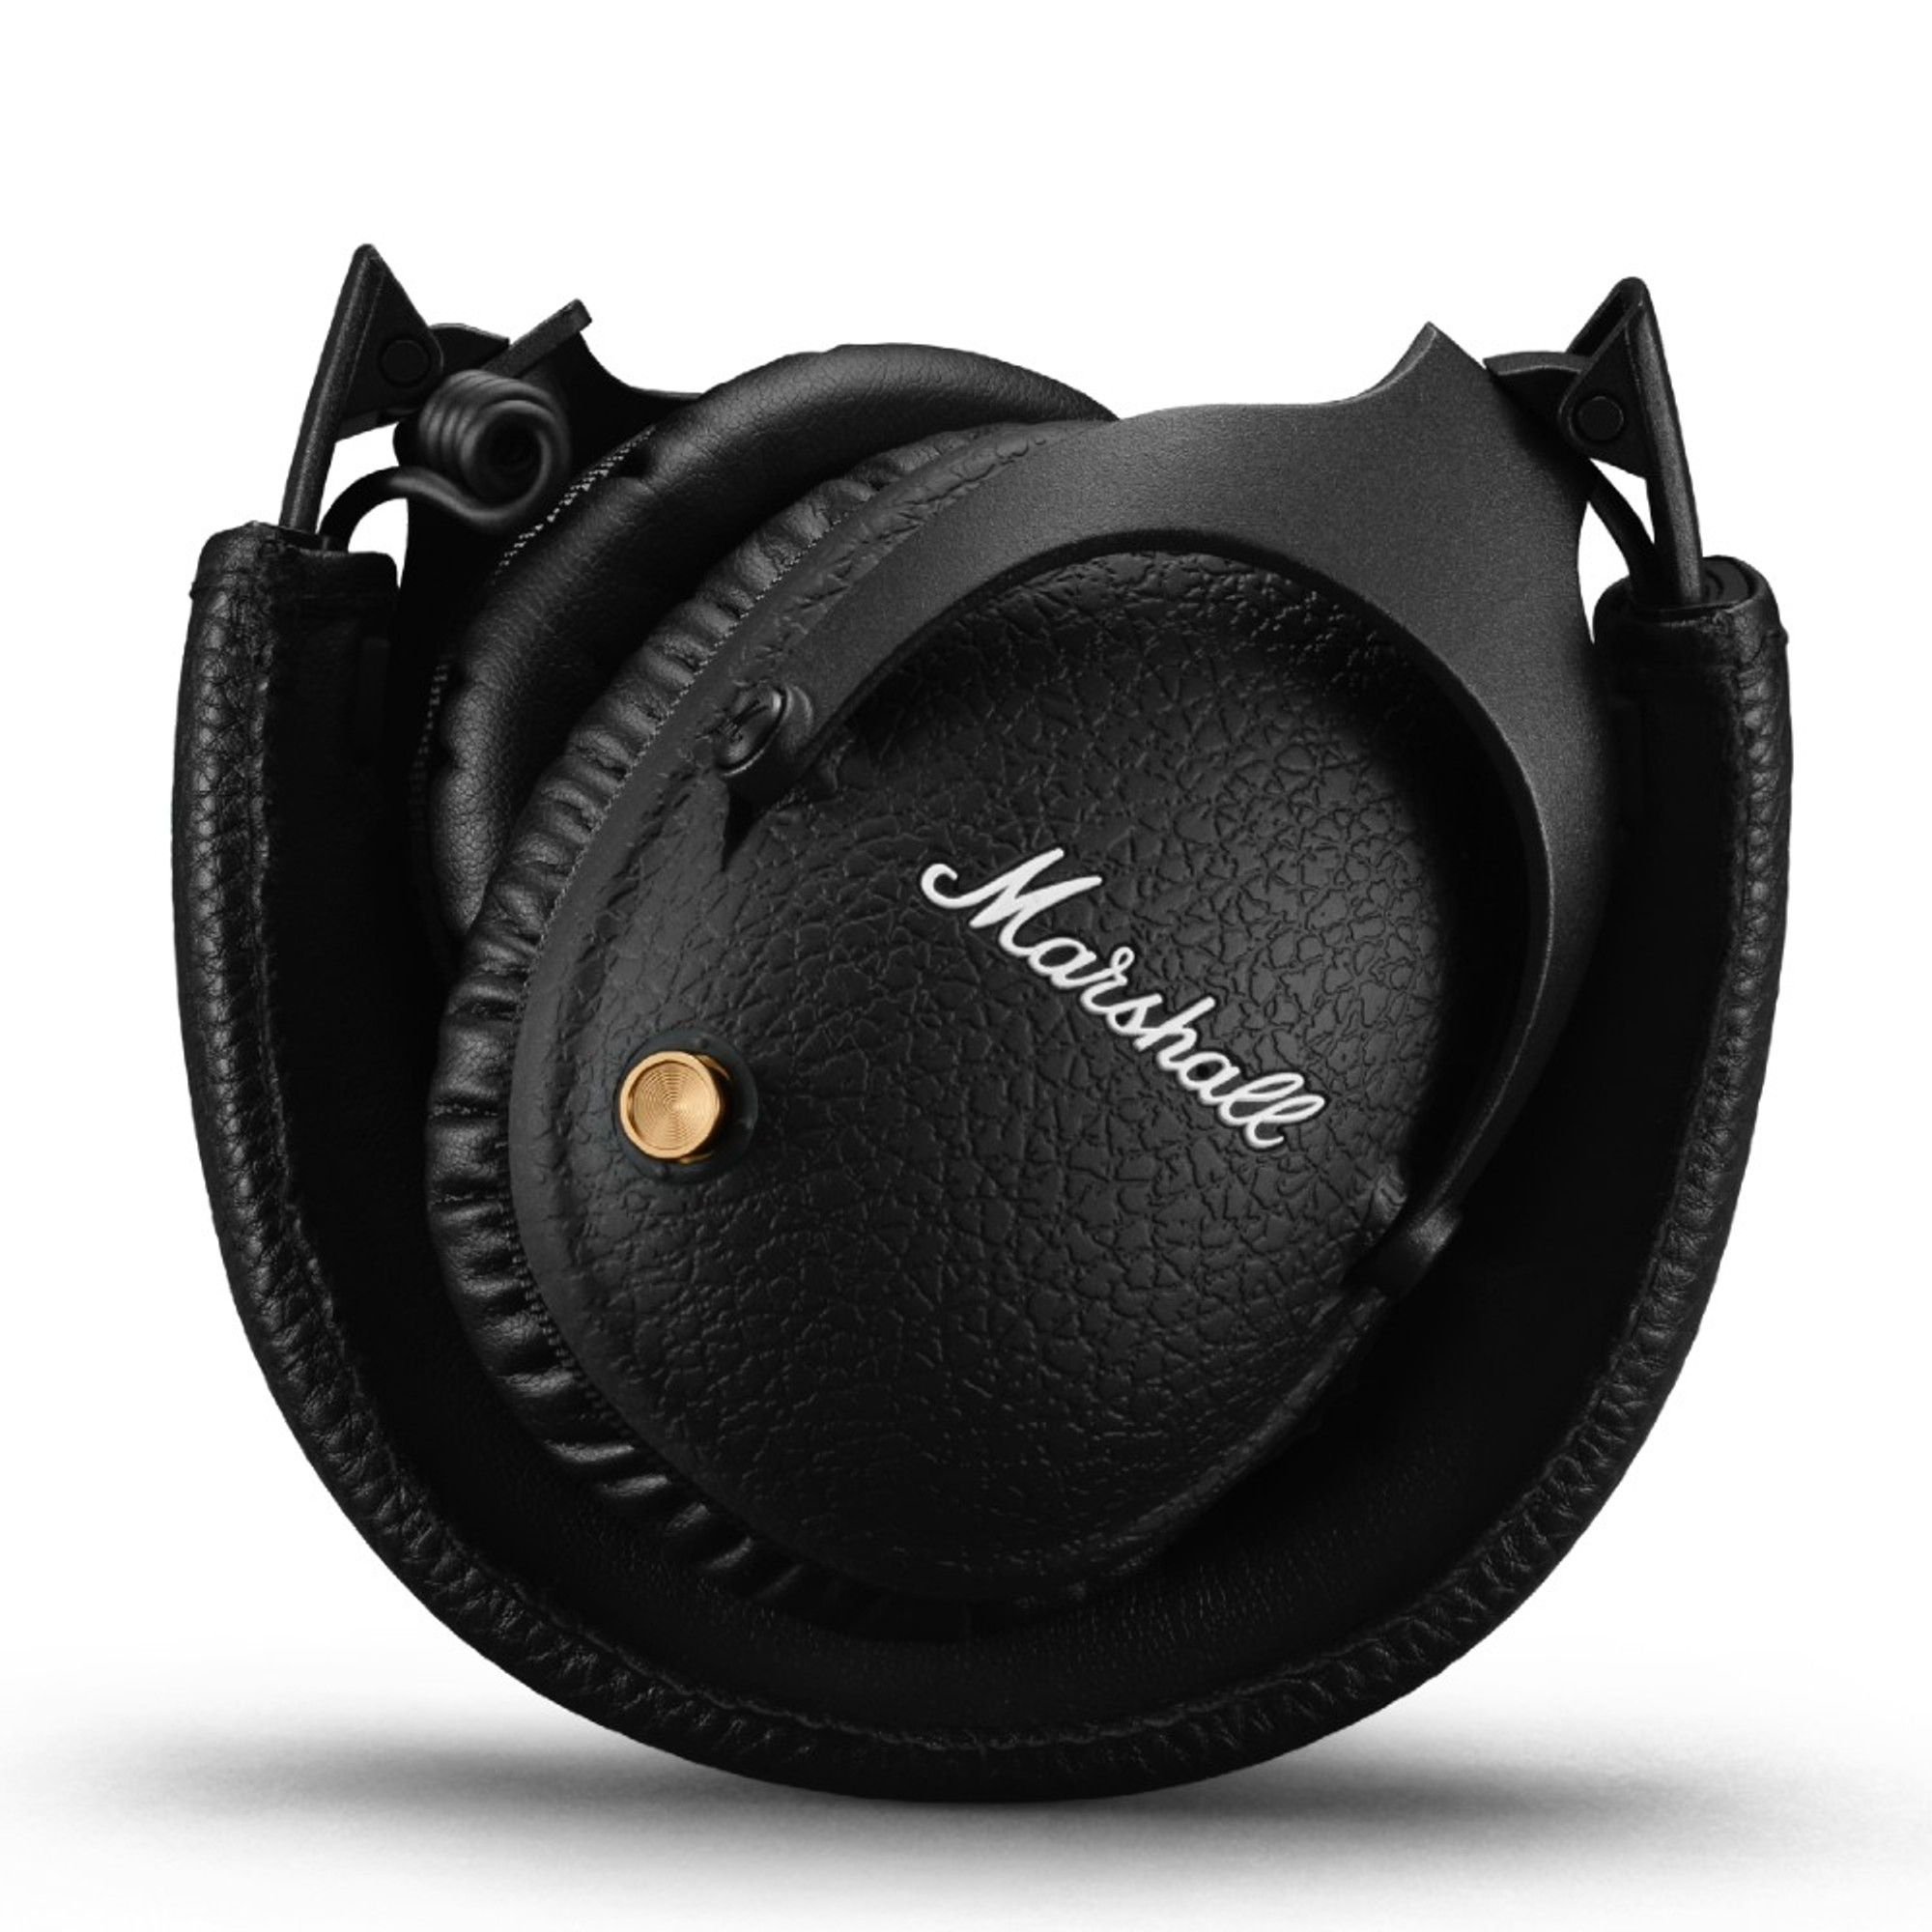 Marshall Monitor II A.N.C. Wireless Active Noise Cancelling Headphones  (Black)